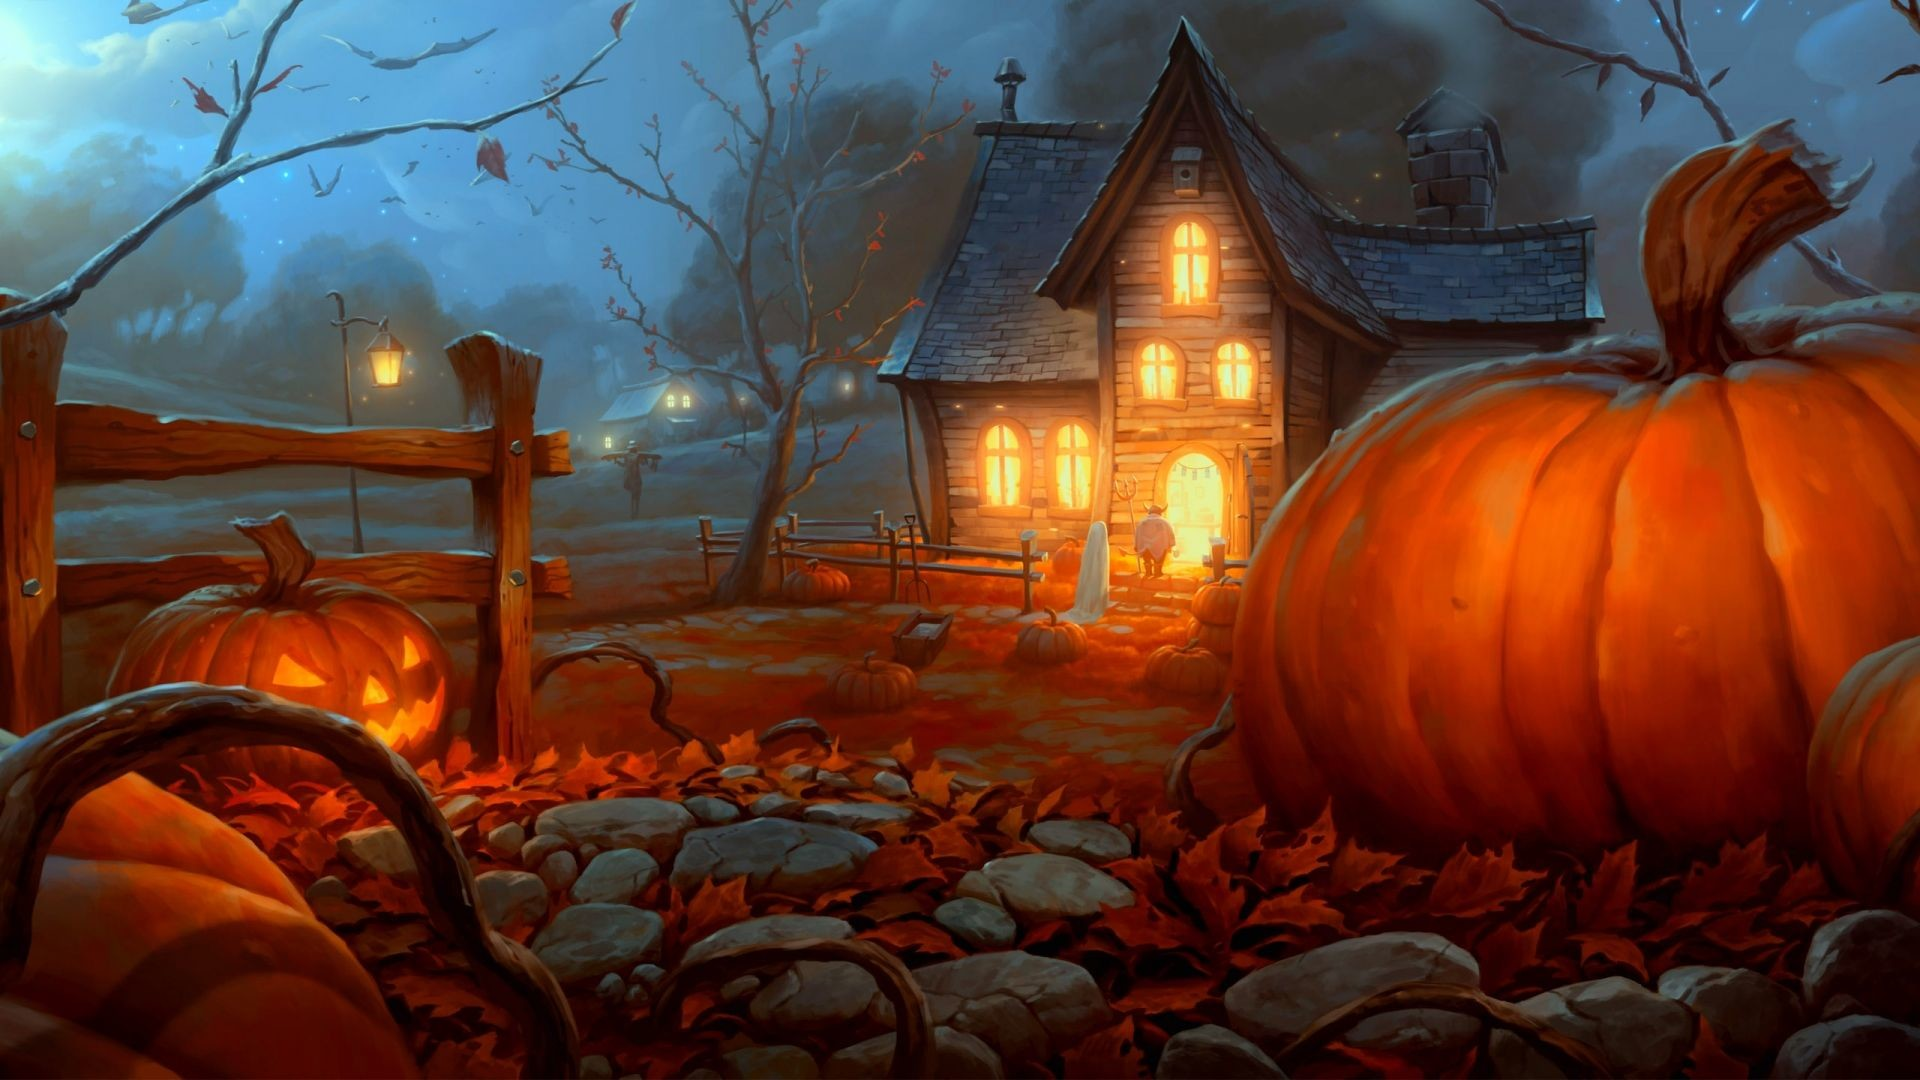 1920x1080 hd halloween wallpaper